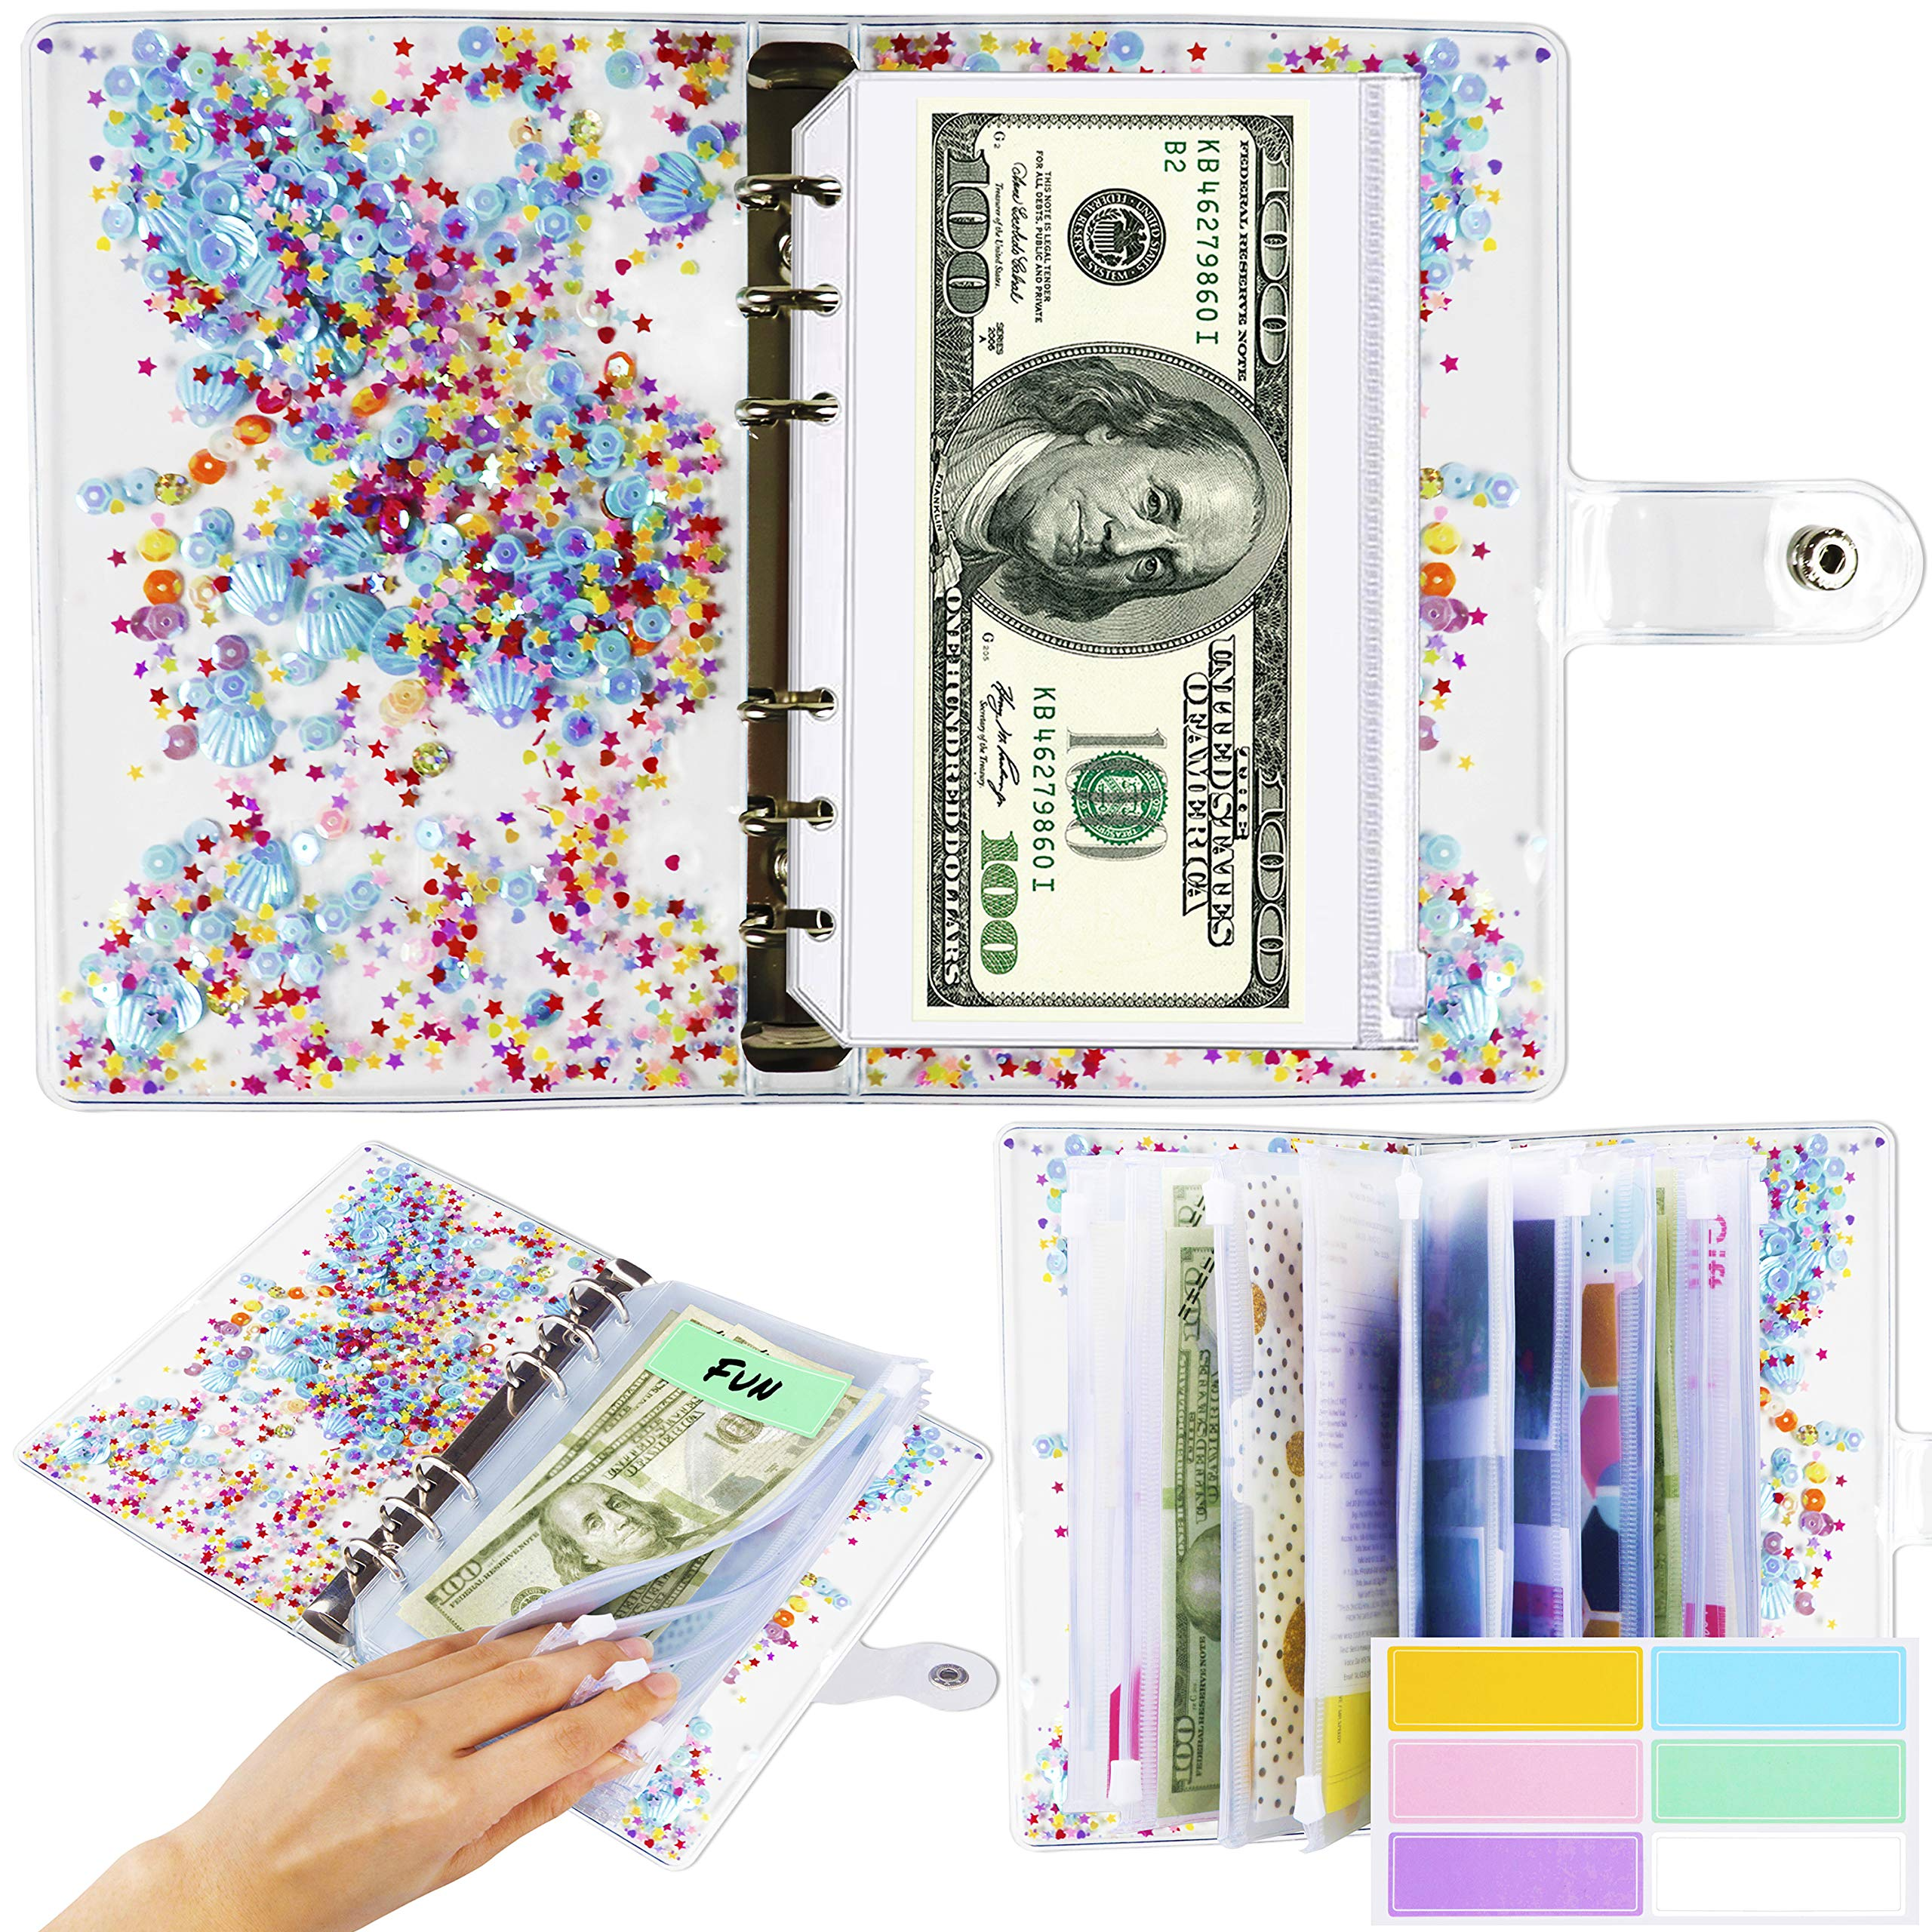 A6 Binder Cover and 12 Clear Envelopes, Budget Binder with Cash Envelopes for Budgeting, Binder Pockets Cash Envelope Wallet, Budget Planner Organizer, Cash Envelope Binder with Budget Envelopes Shell